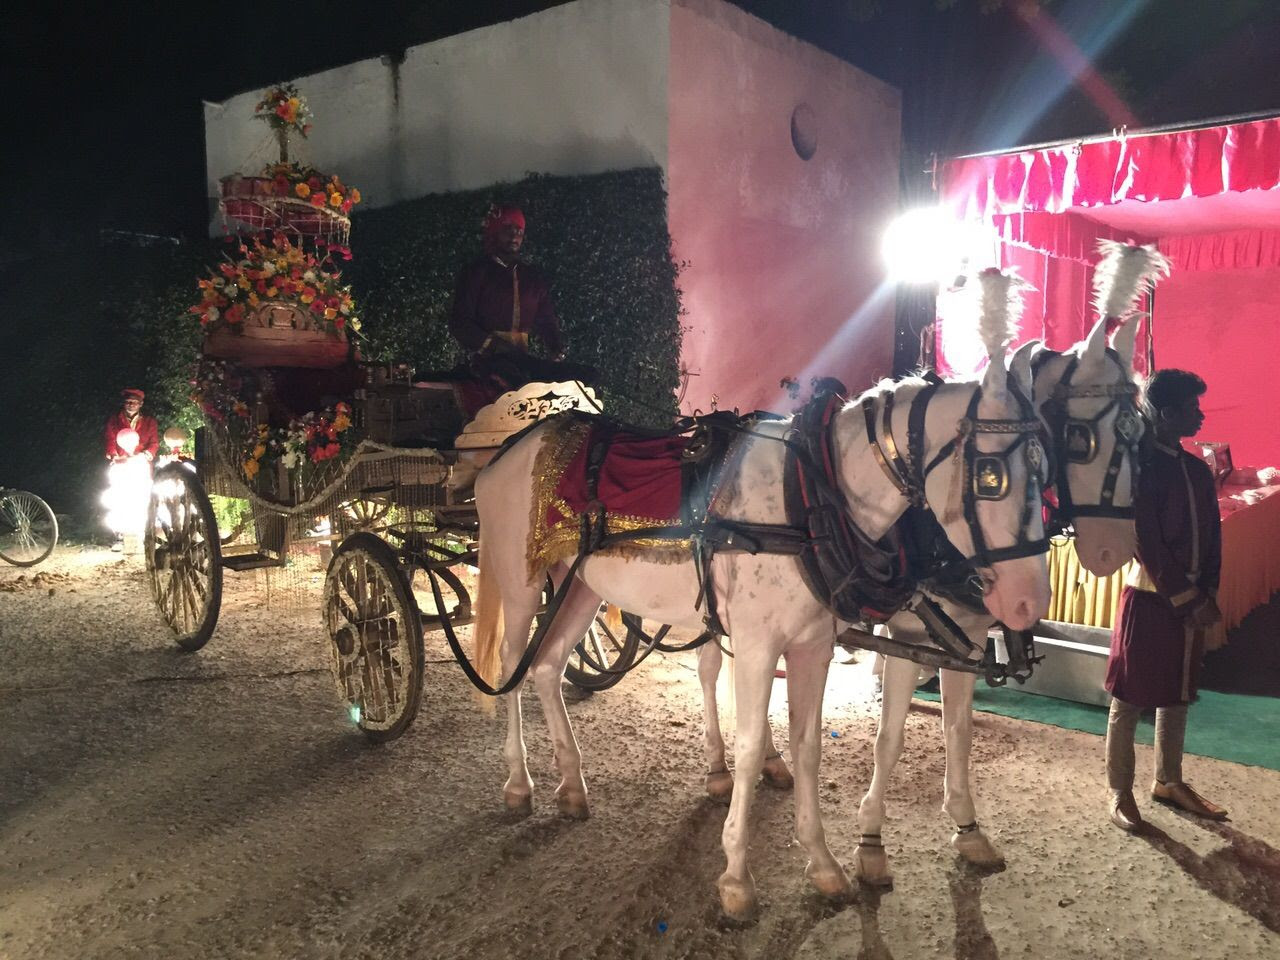 Delhi Wedding Chariot photo 2015-05-16 17.36.30_zpsl6vvdrhd.jpg